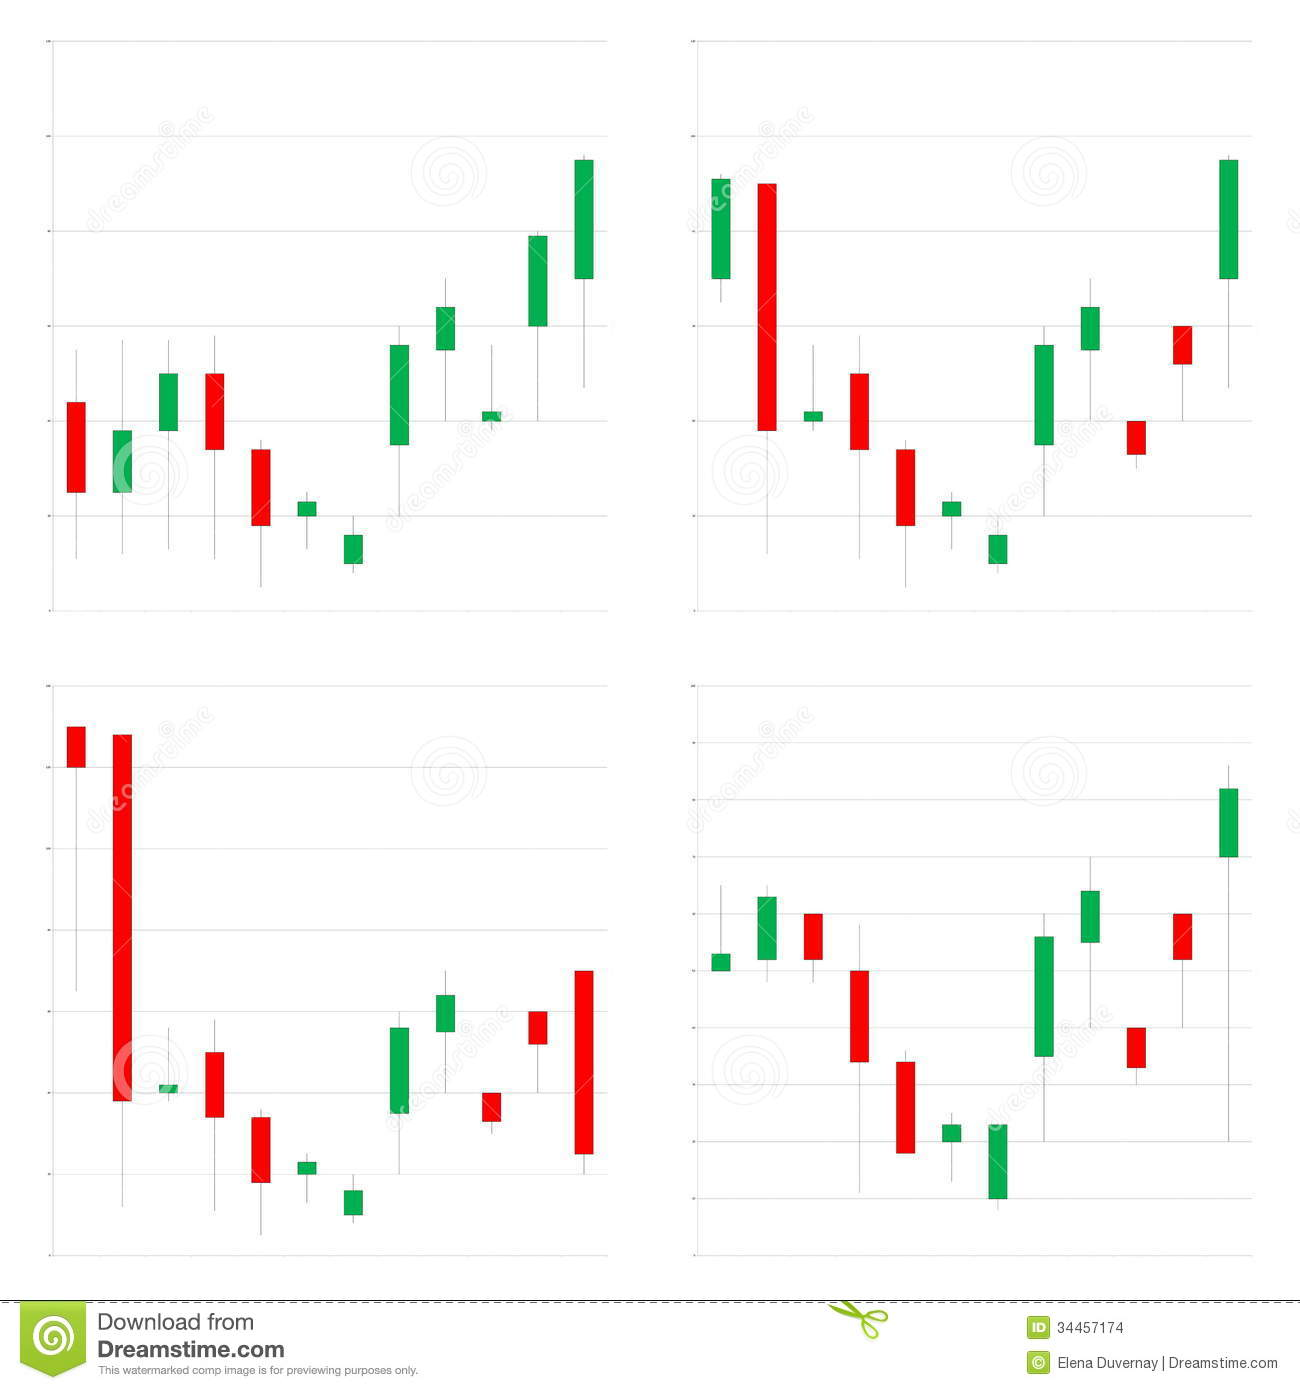 Candice japanese candlesticks index